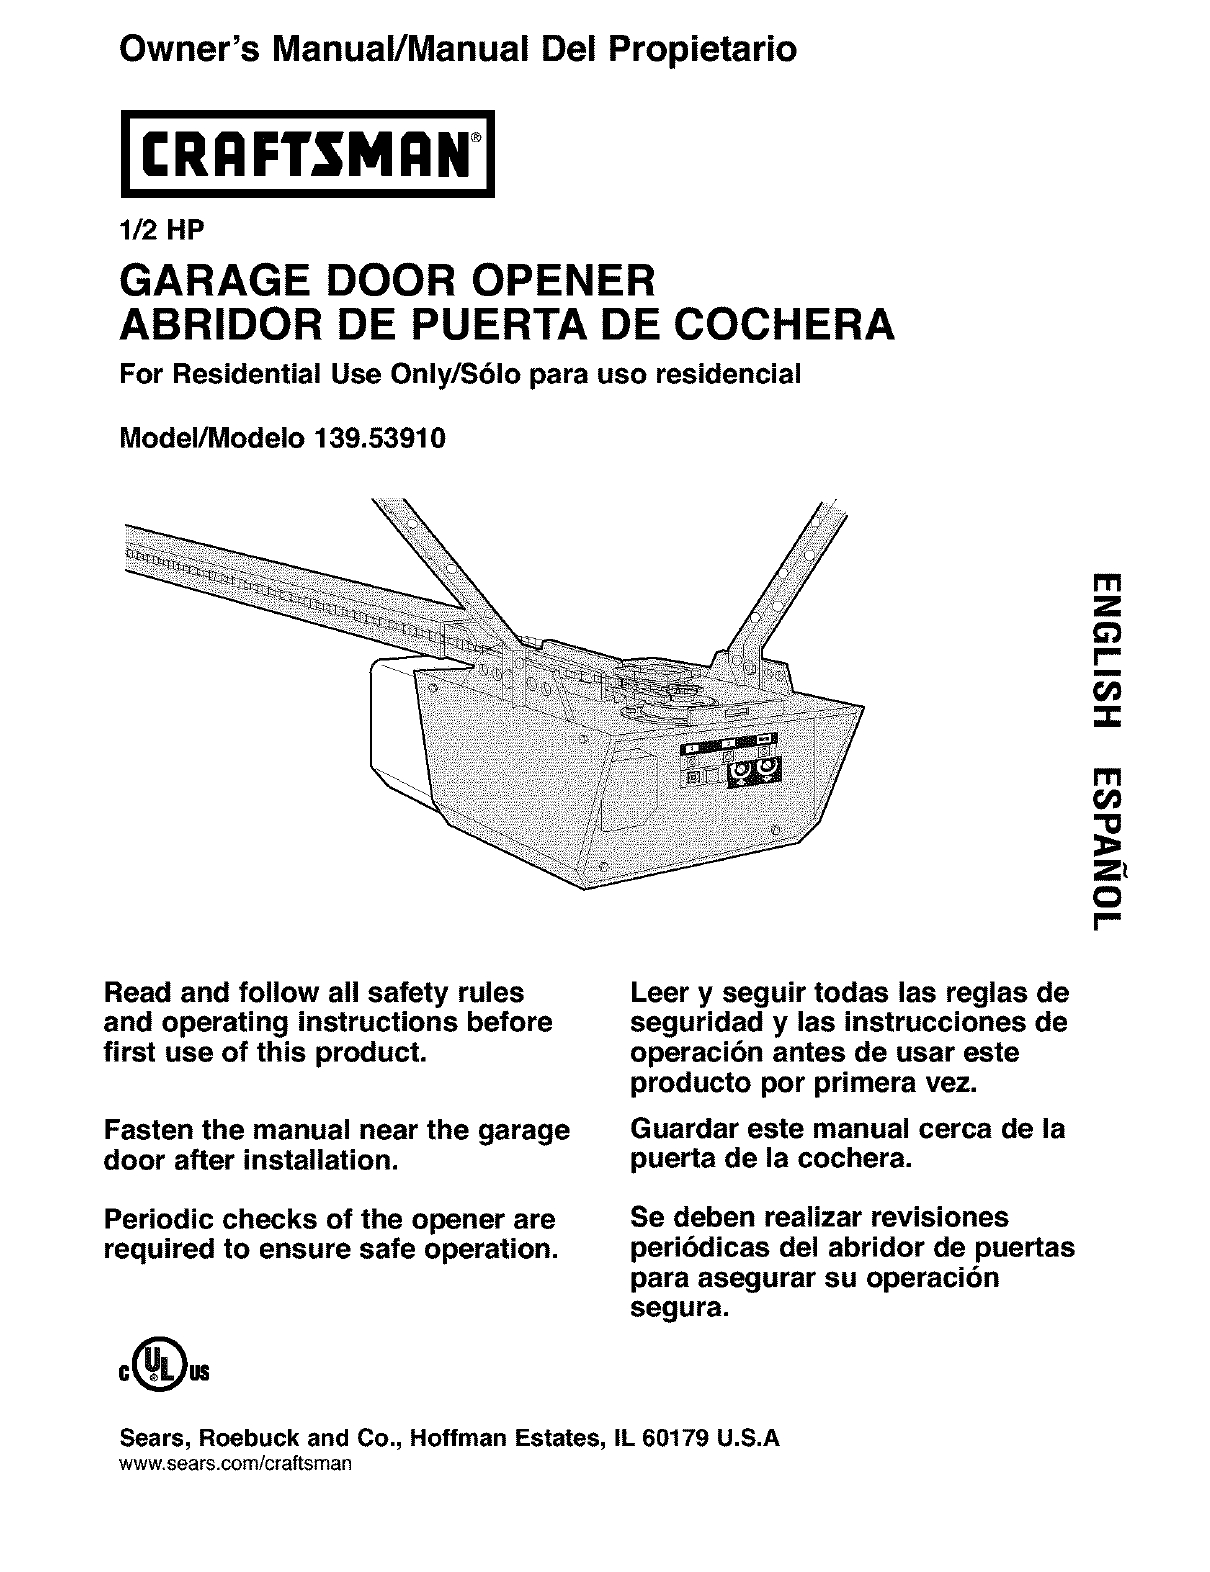 craftsman 1 2 hp garage door opener wiring diagram Collection-Craftsman Garage Door Opener Wiring Diagram Unique Garage Door Manual Subversia 2-j